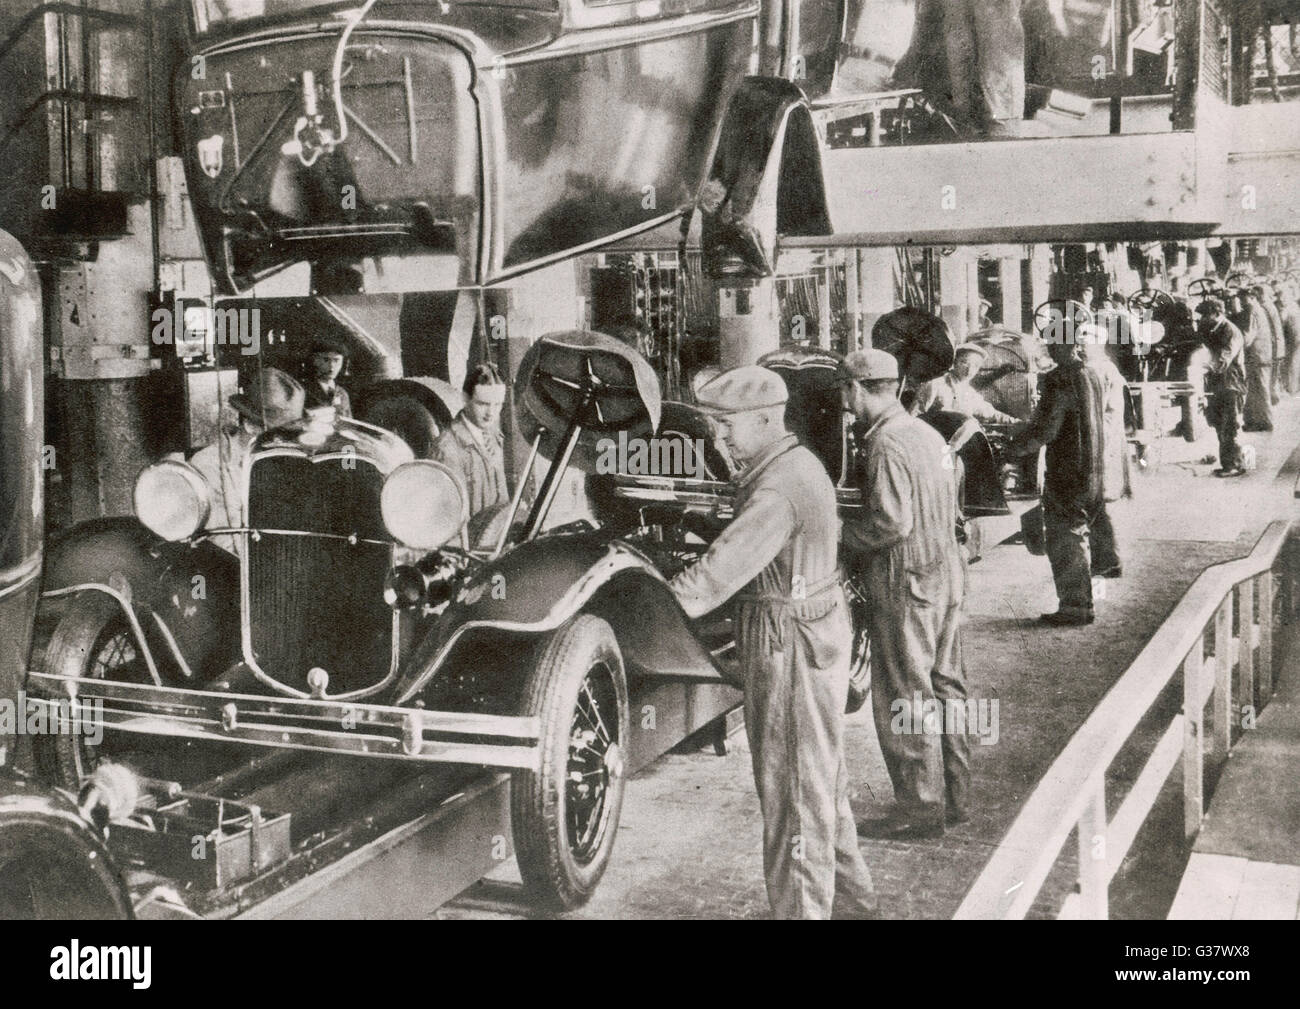 Working On The Ford Assembly Line Date 1929 Stock Photo 105280176